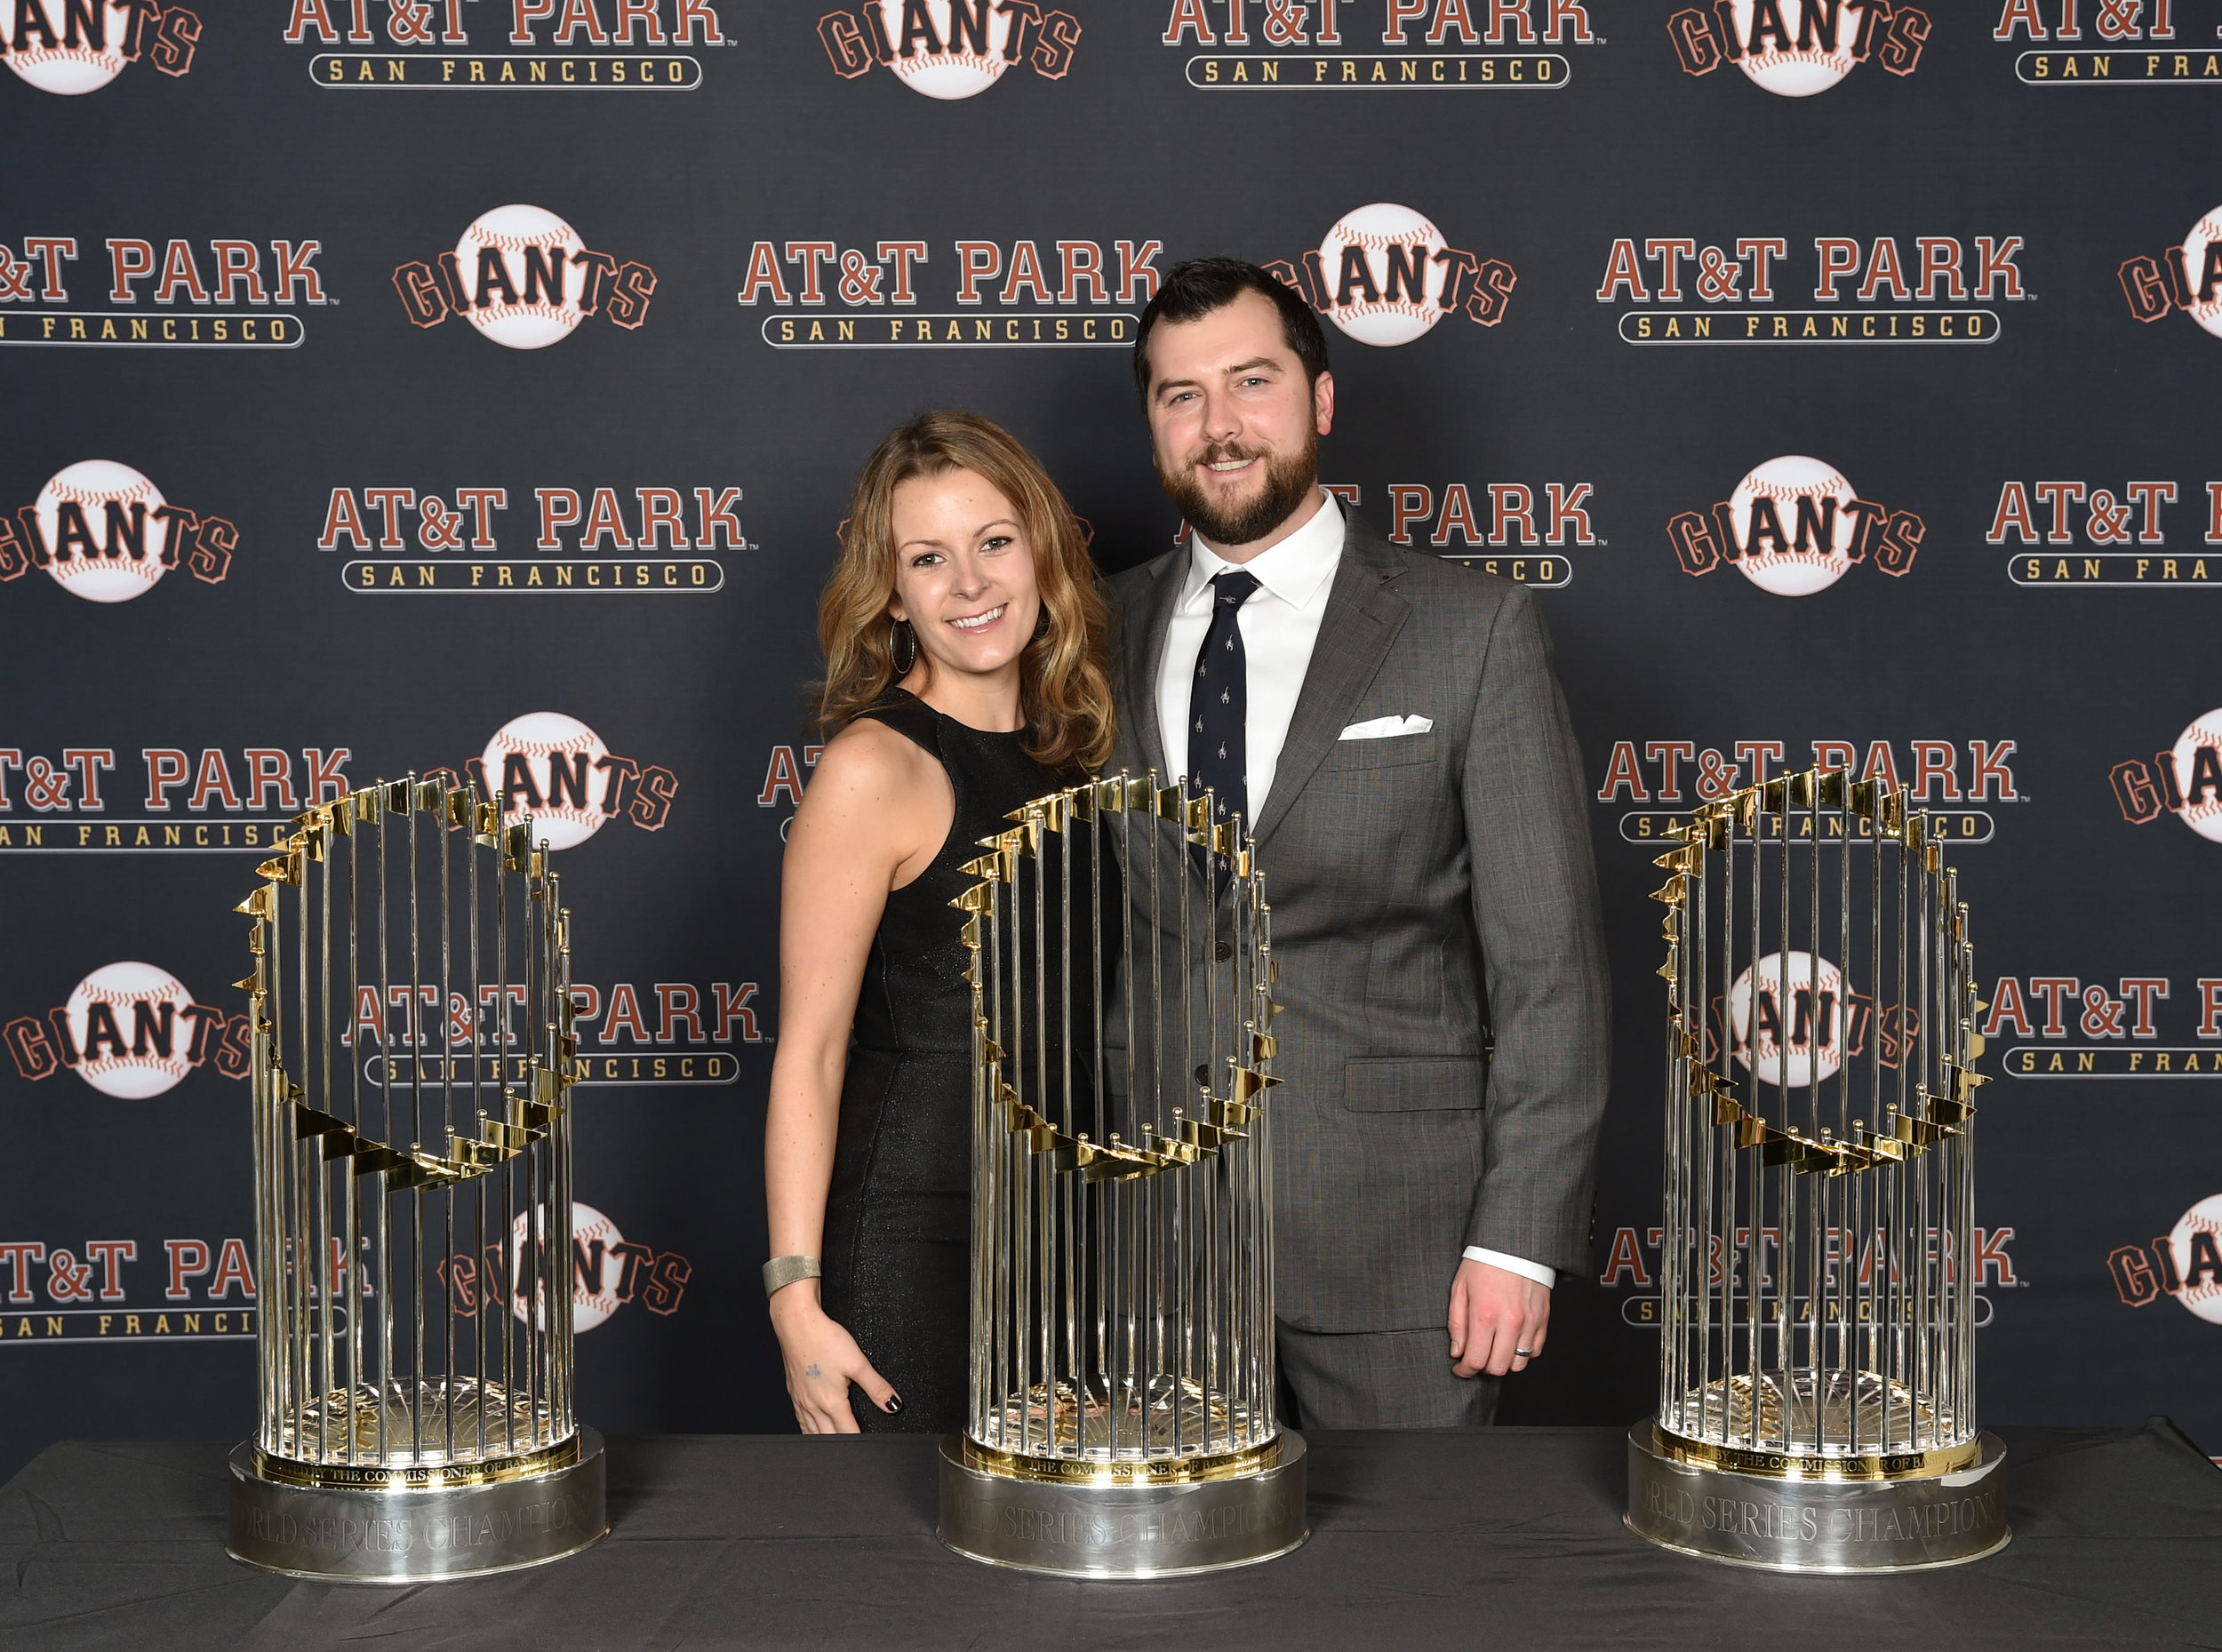 World Series Step and Repeat copy.jpg